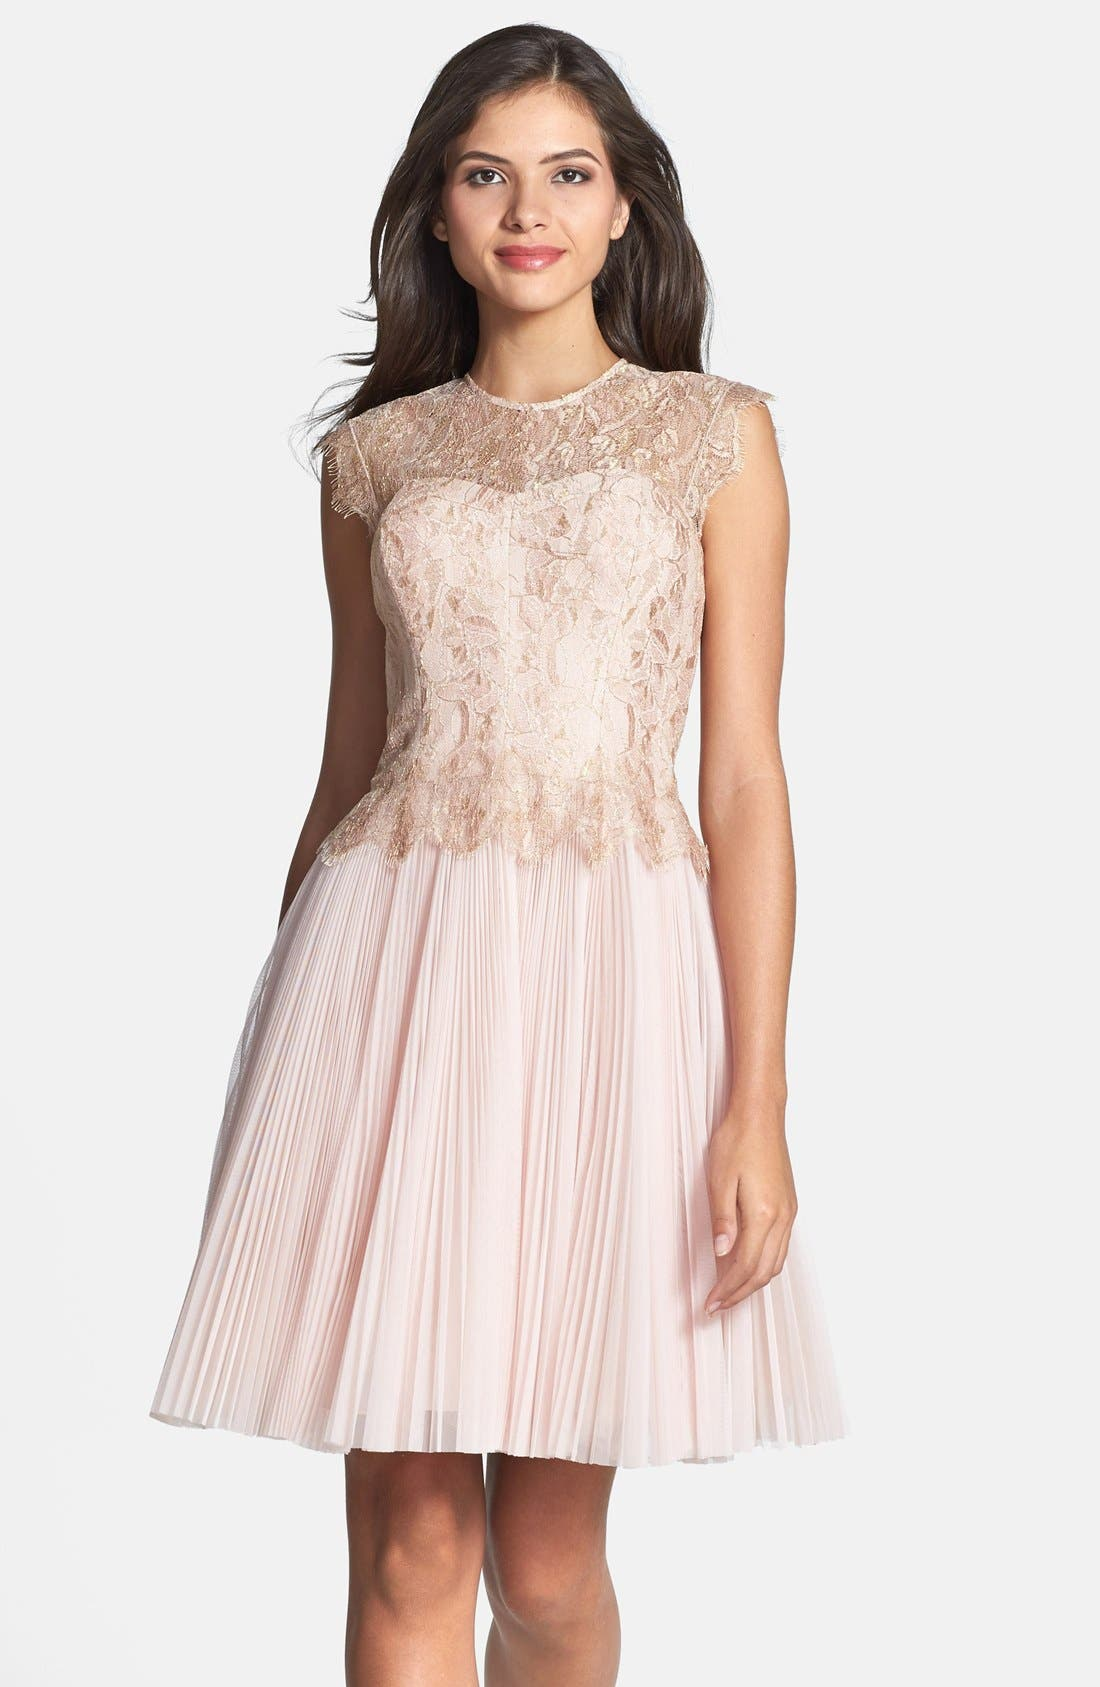 'Remma' Metallic Lace Overlay Fit & Flare Dress,                             Main thumbnail 1, color,                             672